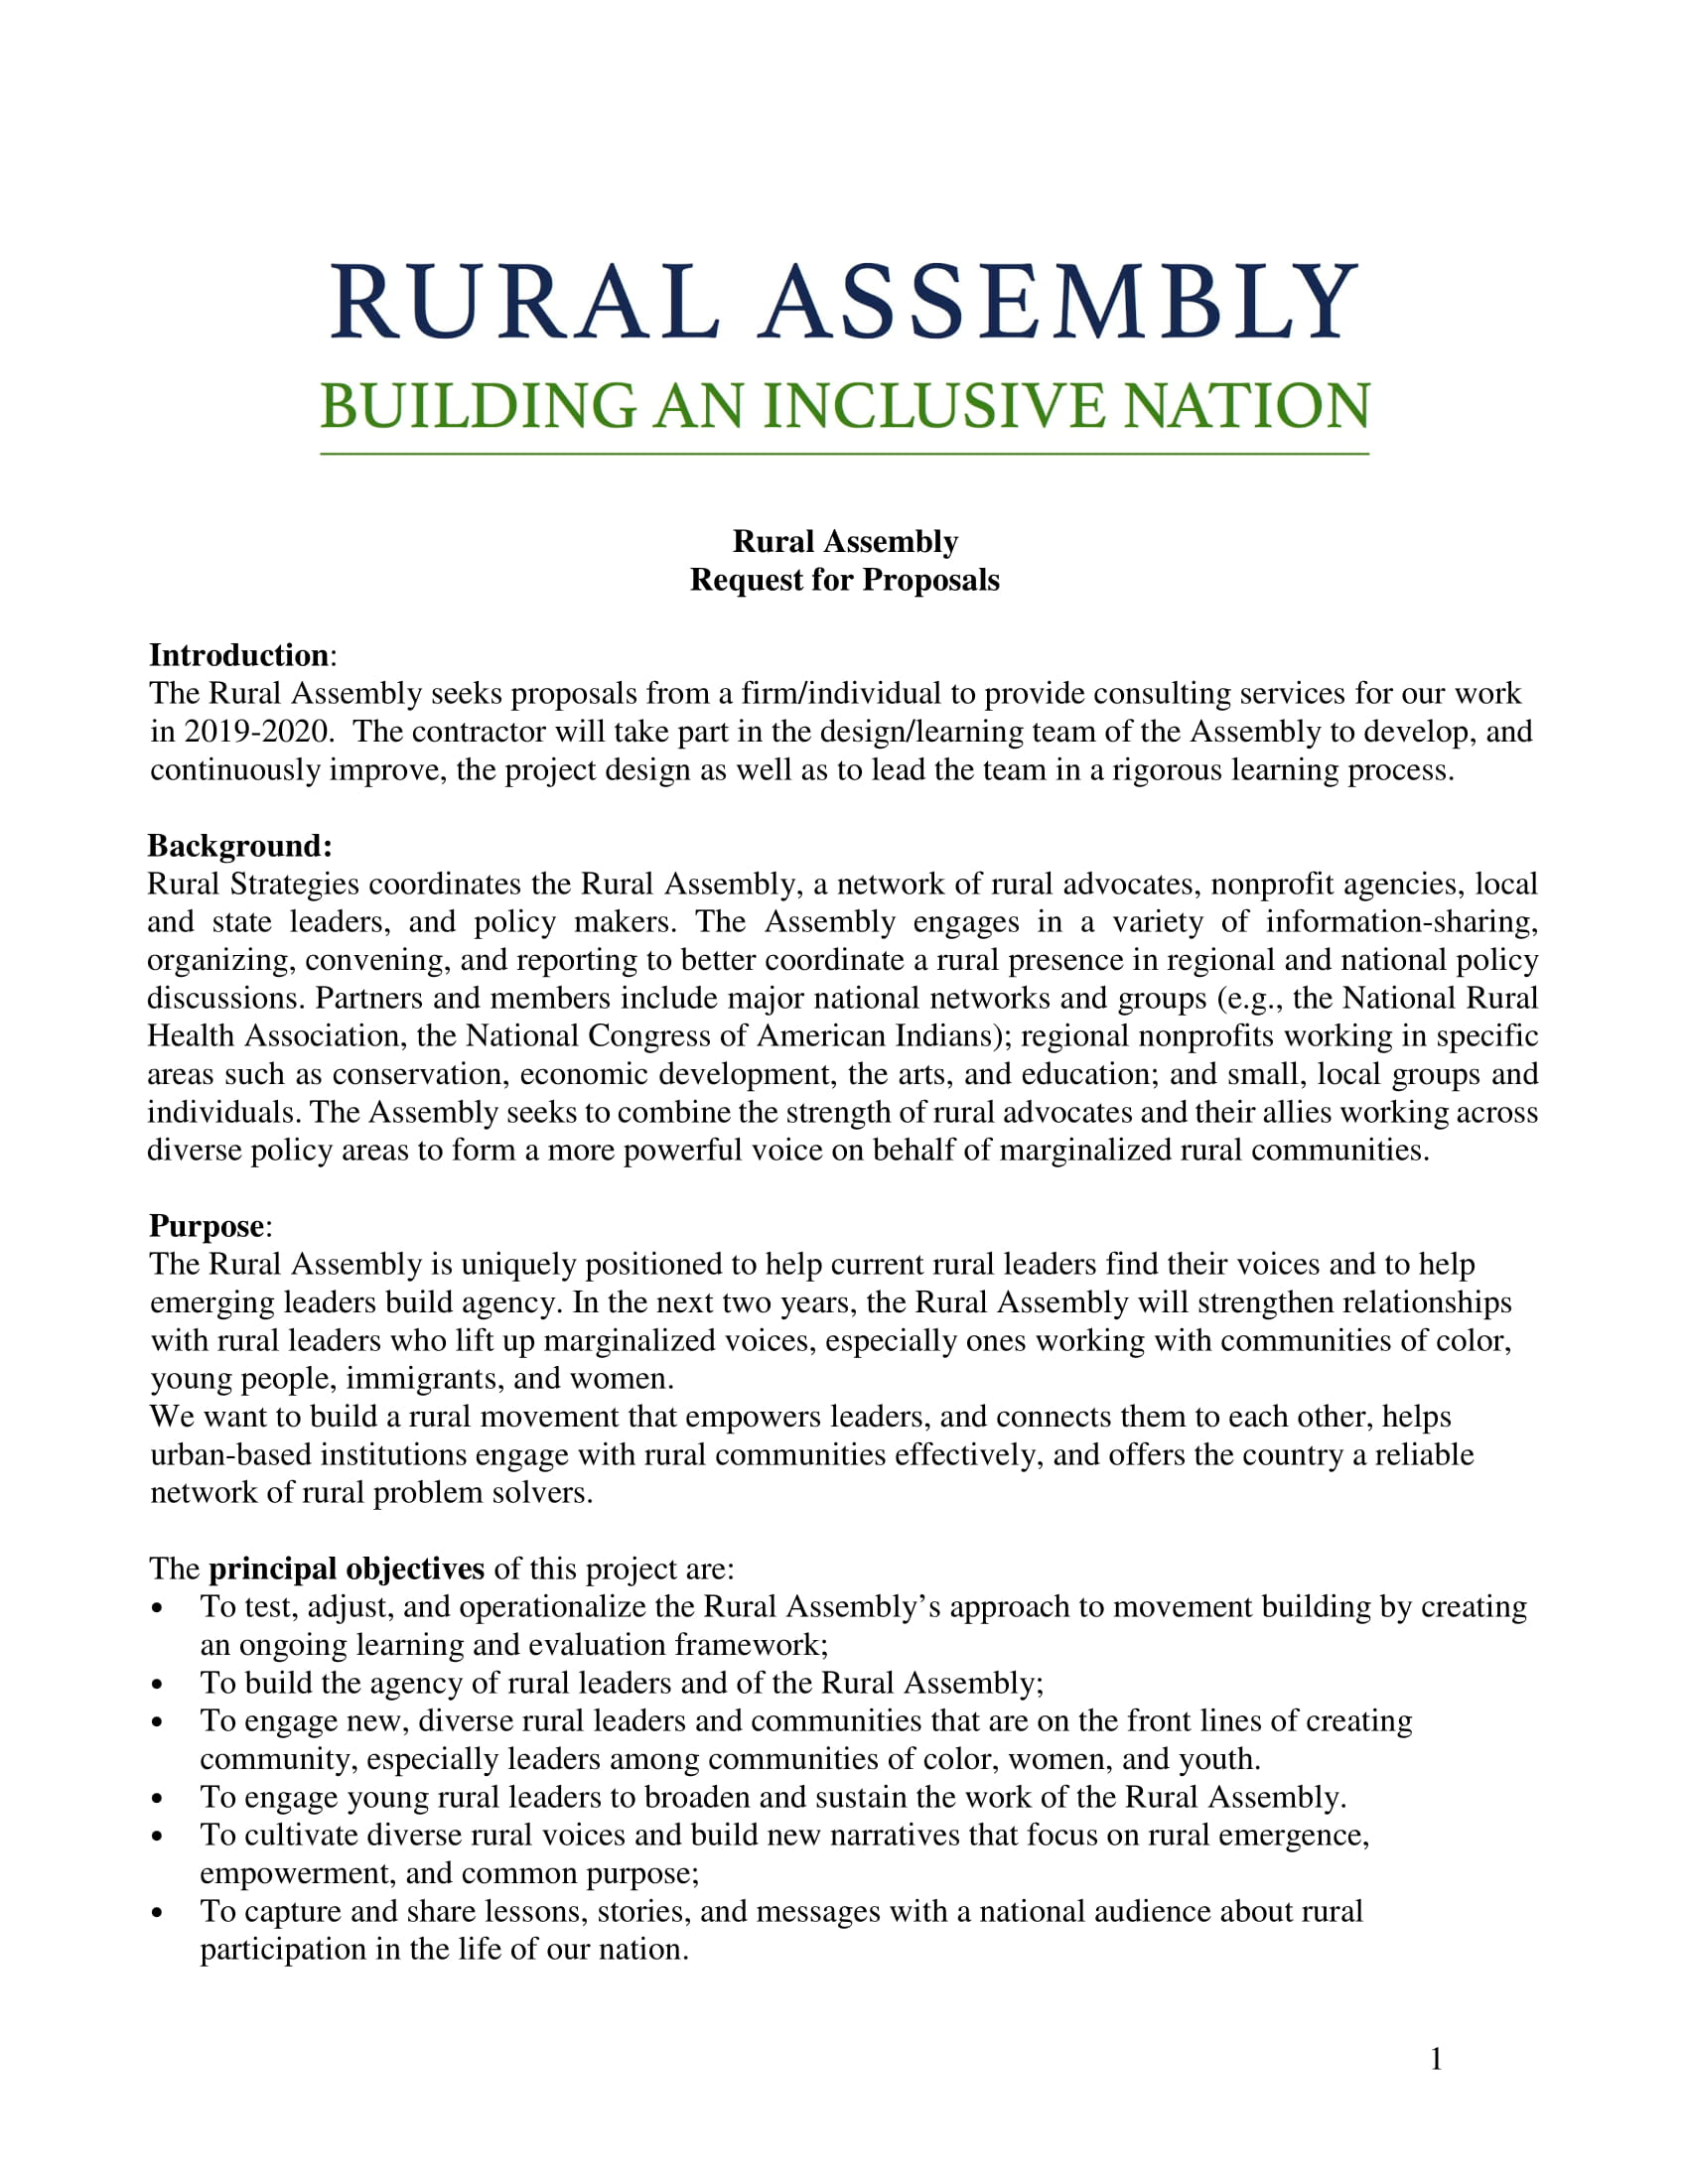 Rural Assembly Learning Consultant RFP Final-1.jpg